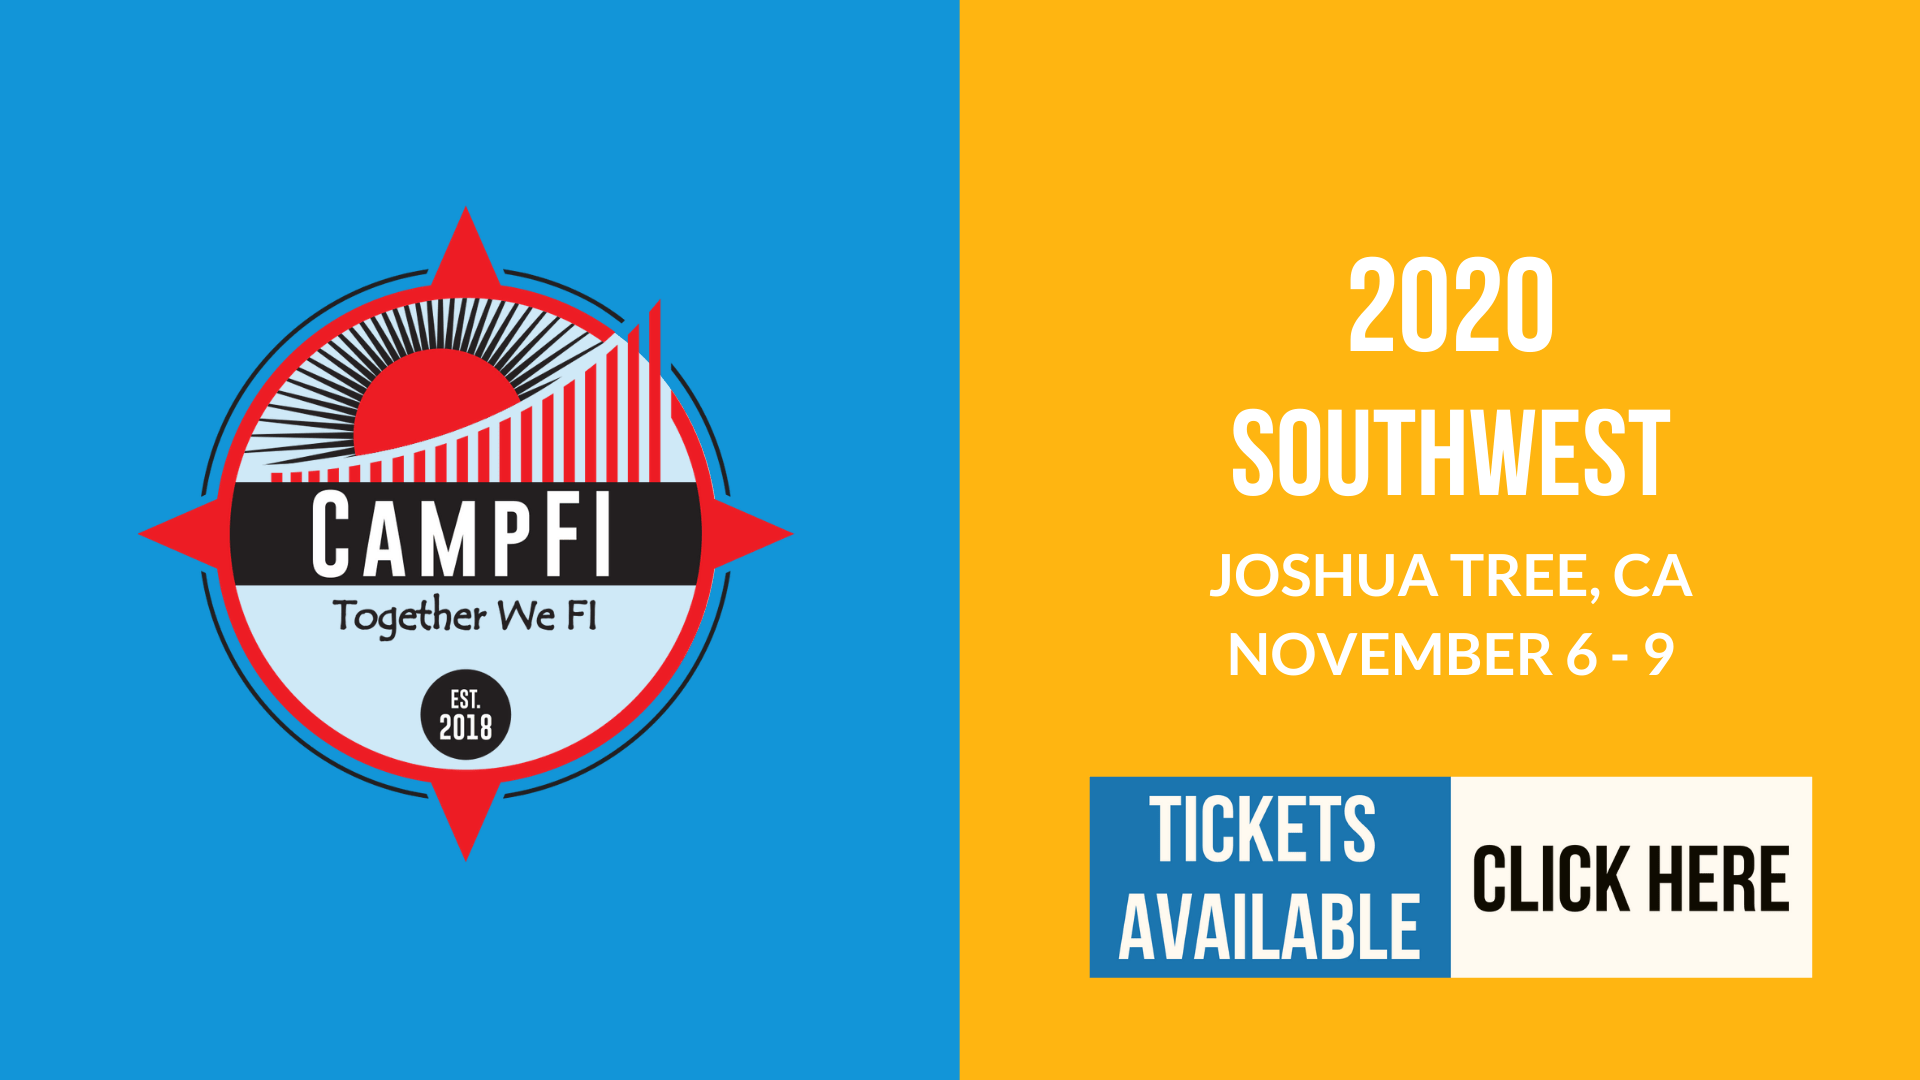 CampFI Southwest 2020 - Tickets - Fiology